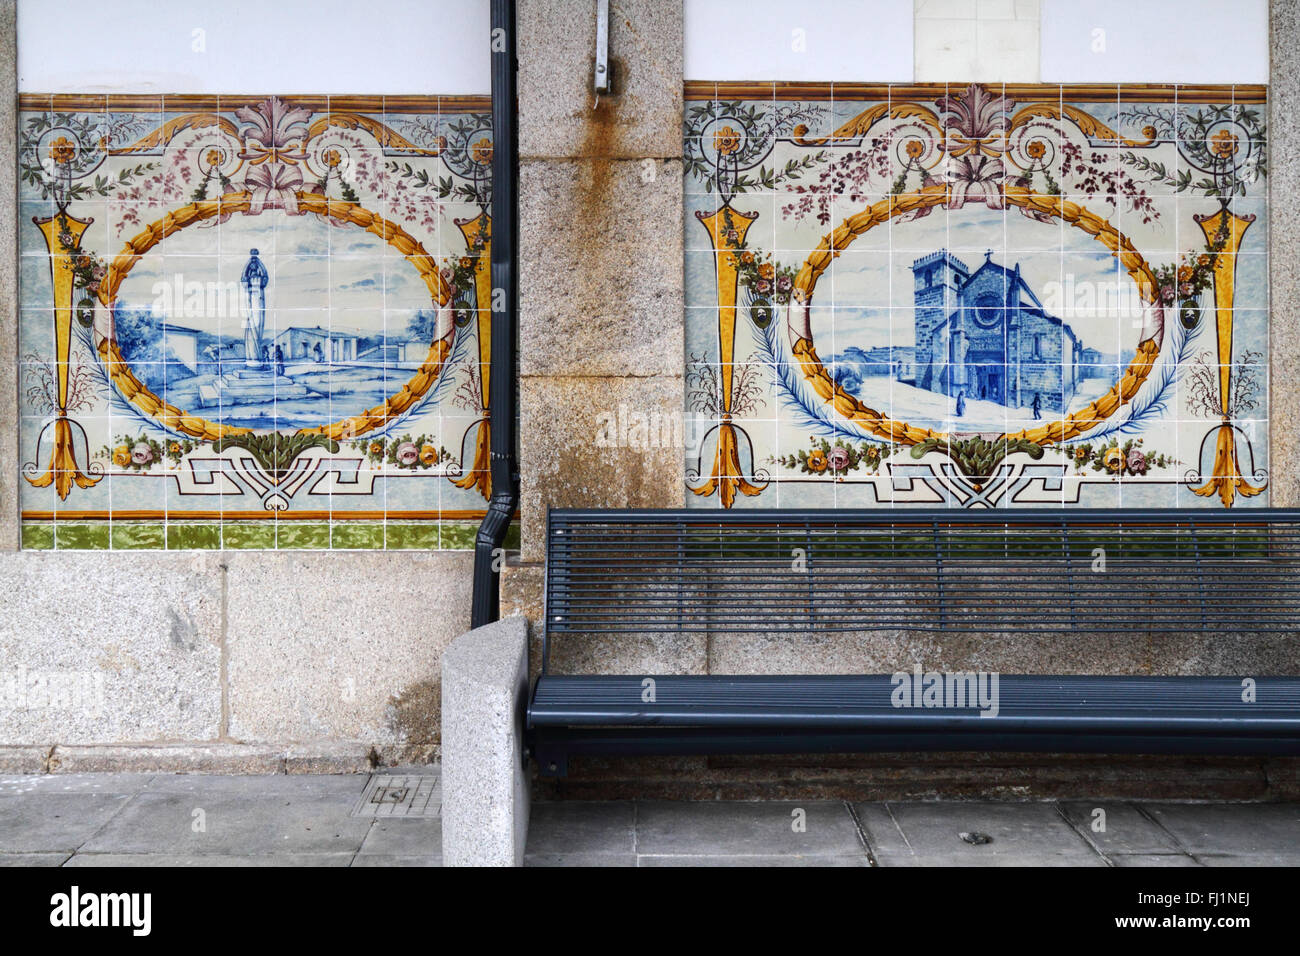 Ceramic tiles or azulejos on wall of railway station caminha ceramic tiles or azulejos on wall of railway station caminha minho province northern portugal dailygadgetfo Gallery